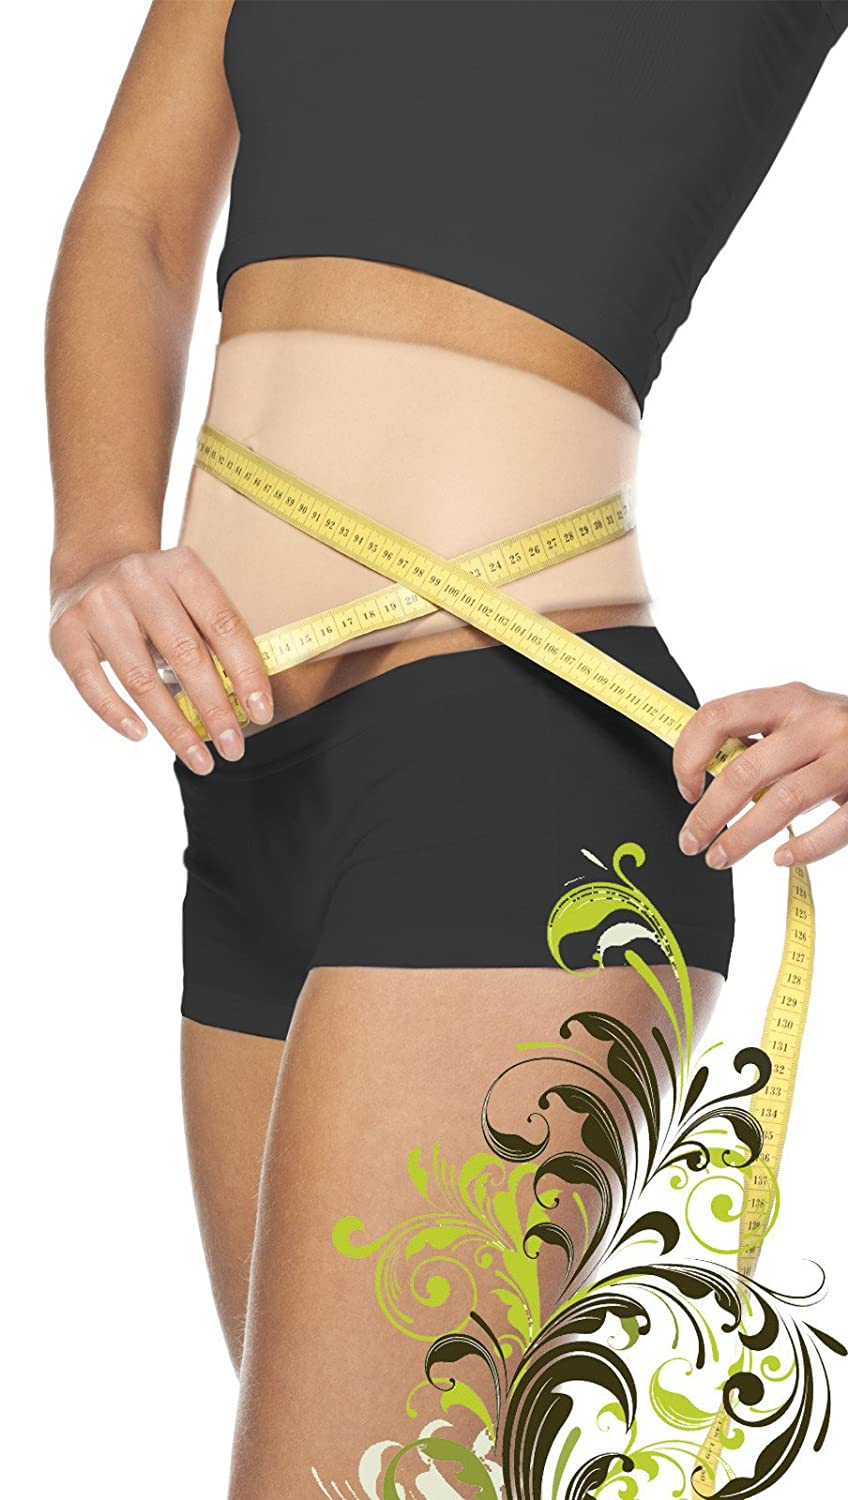 Amazon ultimate lipo applicator body wrap kit 3 wraps and amazon ultimate lipo applicator body wrap kit 3 wraps and contouring defining gel 507 oz it works for body shape tightening beauty solutioingenieria Image collections